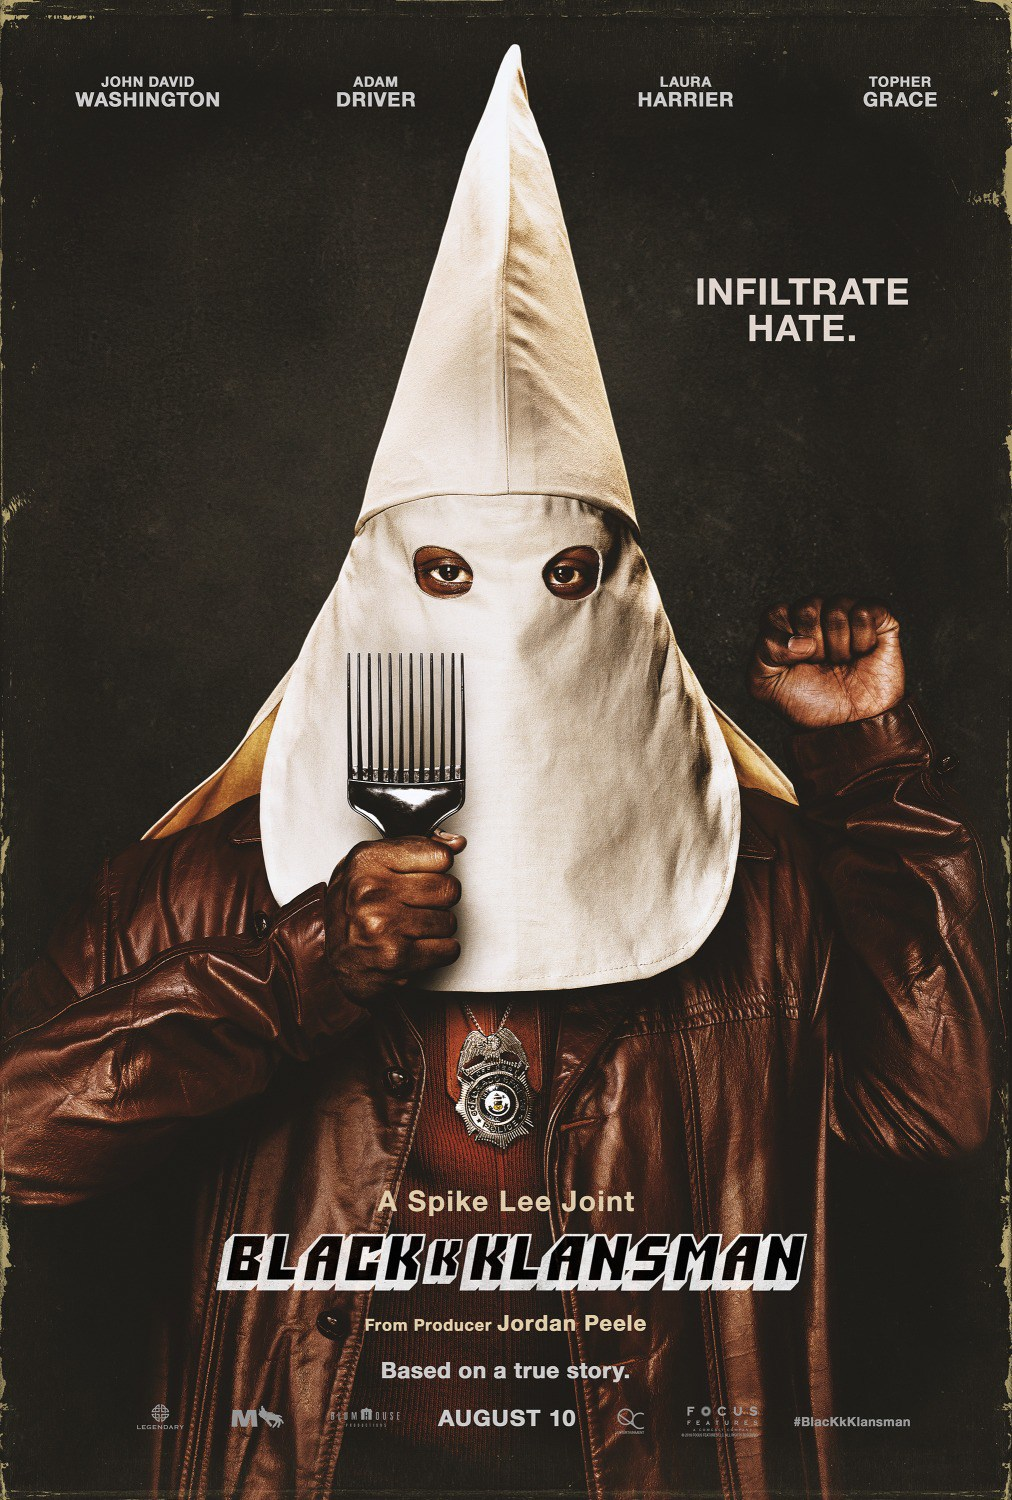 Review of Blackkklansman by Kathia Woods - Blackkklansman is the latest offering by acclaimed filmmaker Spike Lee. The movie is the story of how African-American police officer Ron Stallworth infiltrated the Ku Klux Klan. It all started when he read a recruitment ad in the paper and decided to call. The person on the other end had no idea that his latest recruit was black. This is where the story becomes interesting. Stallworth needs a white counterpart to help him pulls off this ruse. It comes in none other than Flip Zimmerman an undercover detective who also happens to be Jewish. Zimmerman portrayed by Adam Driver is responsible for characterizing the Stallworth who is very charismatically racist online to come to life in the real world. Complicating things further the person Stallworth built his radical repartee with was none other than David Duke. Duke is so impressed by his recruit that he decides to travel to Colorado for his initiation ceremony.Stallworth who finally has found his sense of purpose at the Colorado Police meets Patricia president of the Black Student Union. Patricia is political unapologetically black and anti-police. Let's recap by day Stallworth is pretending to be a white supremacist and at night he's part of the black power movement with Patricia. There are many current themes in this movie. Code-switching the ability to converse in proper English to be accepted by mainstream Americans and jive/ebonies the urban vernacular often used amongst people of color. The complicit behavior at times by white women to use the police department as their security force against black men as seen in the news recently. The spreading of revisionist history to justify racism visa vie to deny the holocaust or holding on to Confederate monuments that celebrated slavery. This movie may take place in the 70's, but the themes are very current. Spike has always been great by being in tune with the fabric of America. This movie works because although the events occ